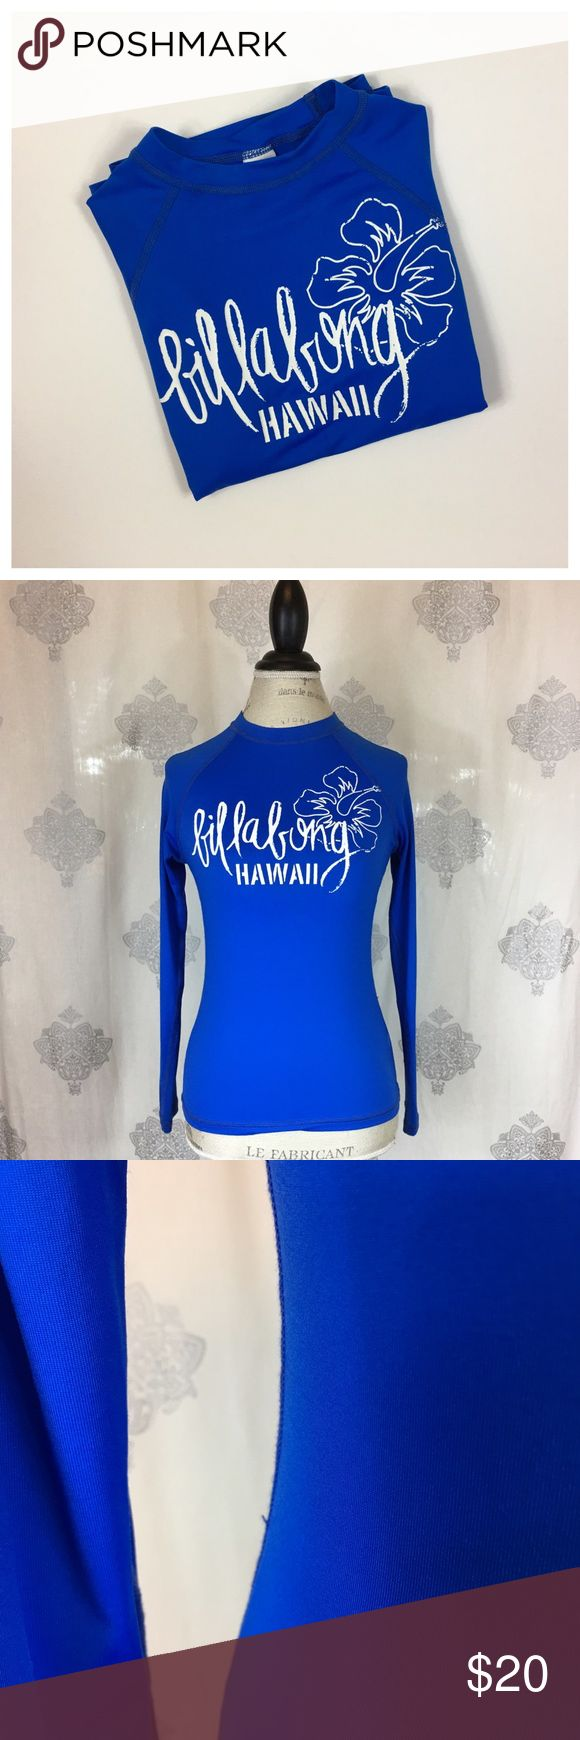 Billabong Rash Guard Bright blue rash guard with white logo graphic. Good used condition. Slight snag on side seam and spot on front of torso. Offers welcome using the Offer button. No trades. Billabong Swim Coverups